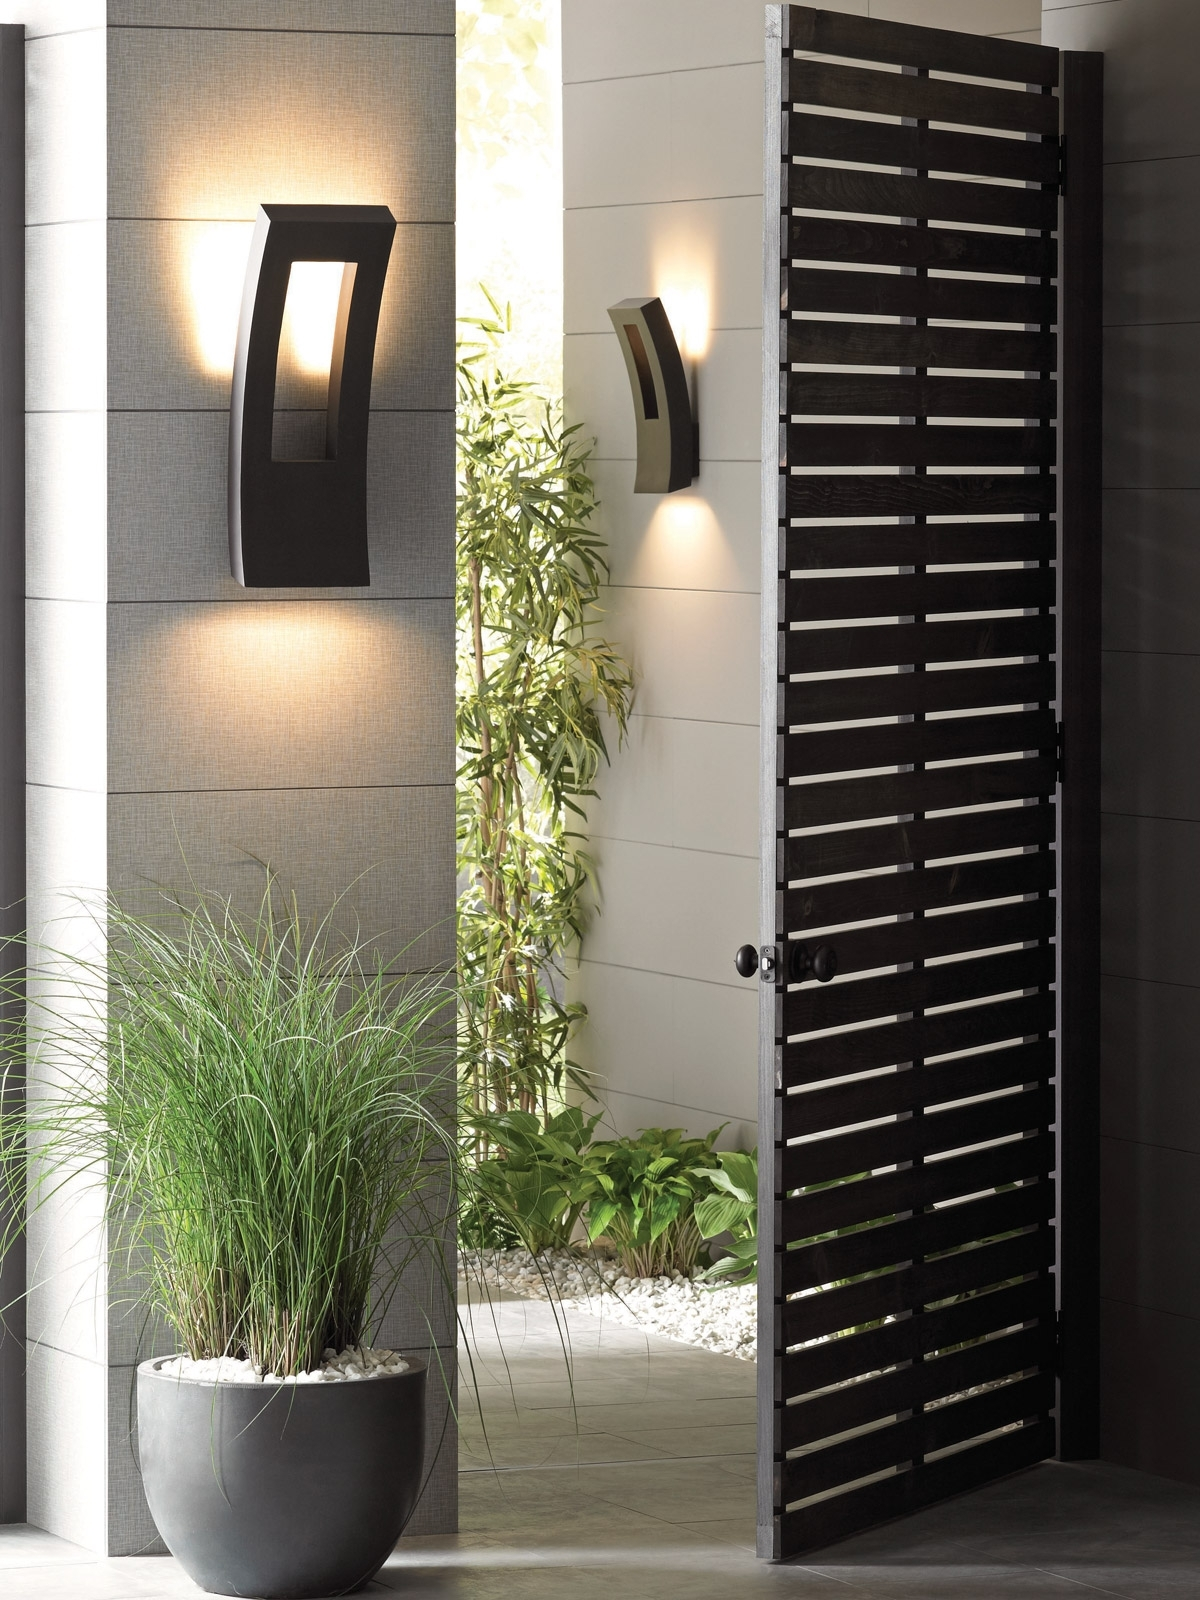 Commercial Led Outdoor Wall Lighting With Regard To Most Recently Released Light : Good Commercial Exterior Wall Mounted Light Fixtures Outside (View 17 of 20)